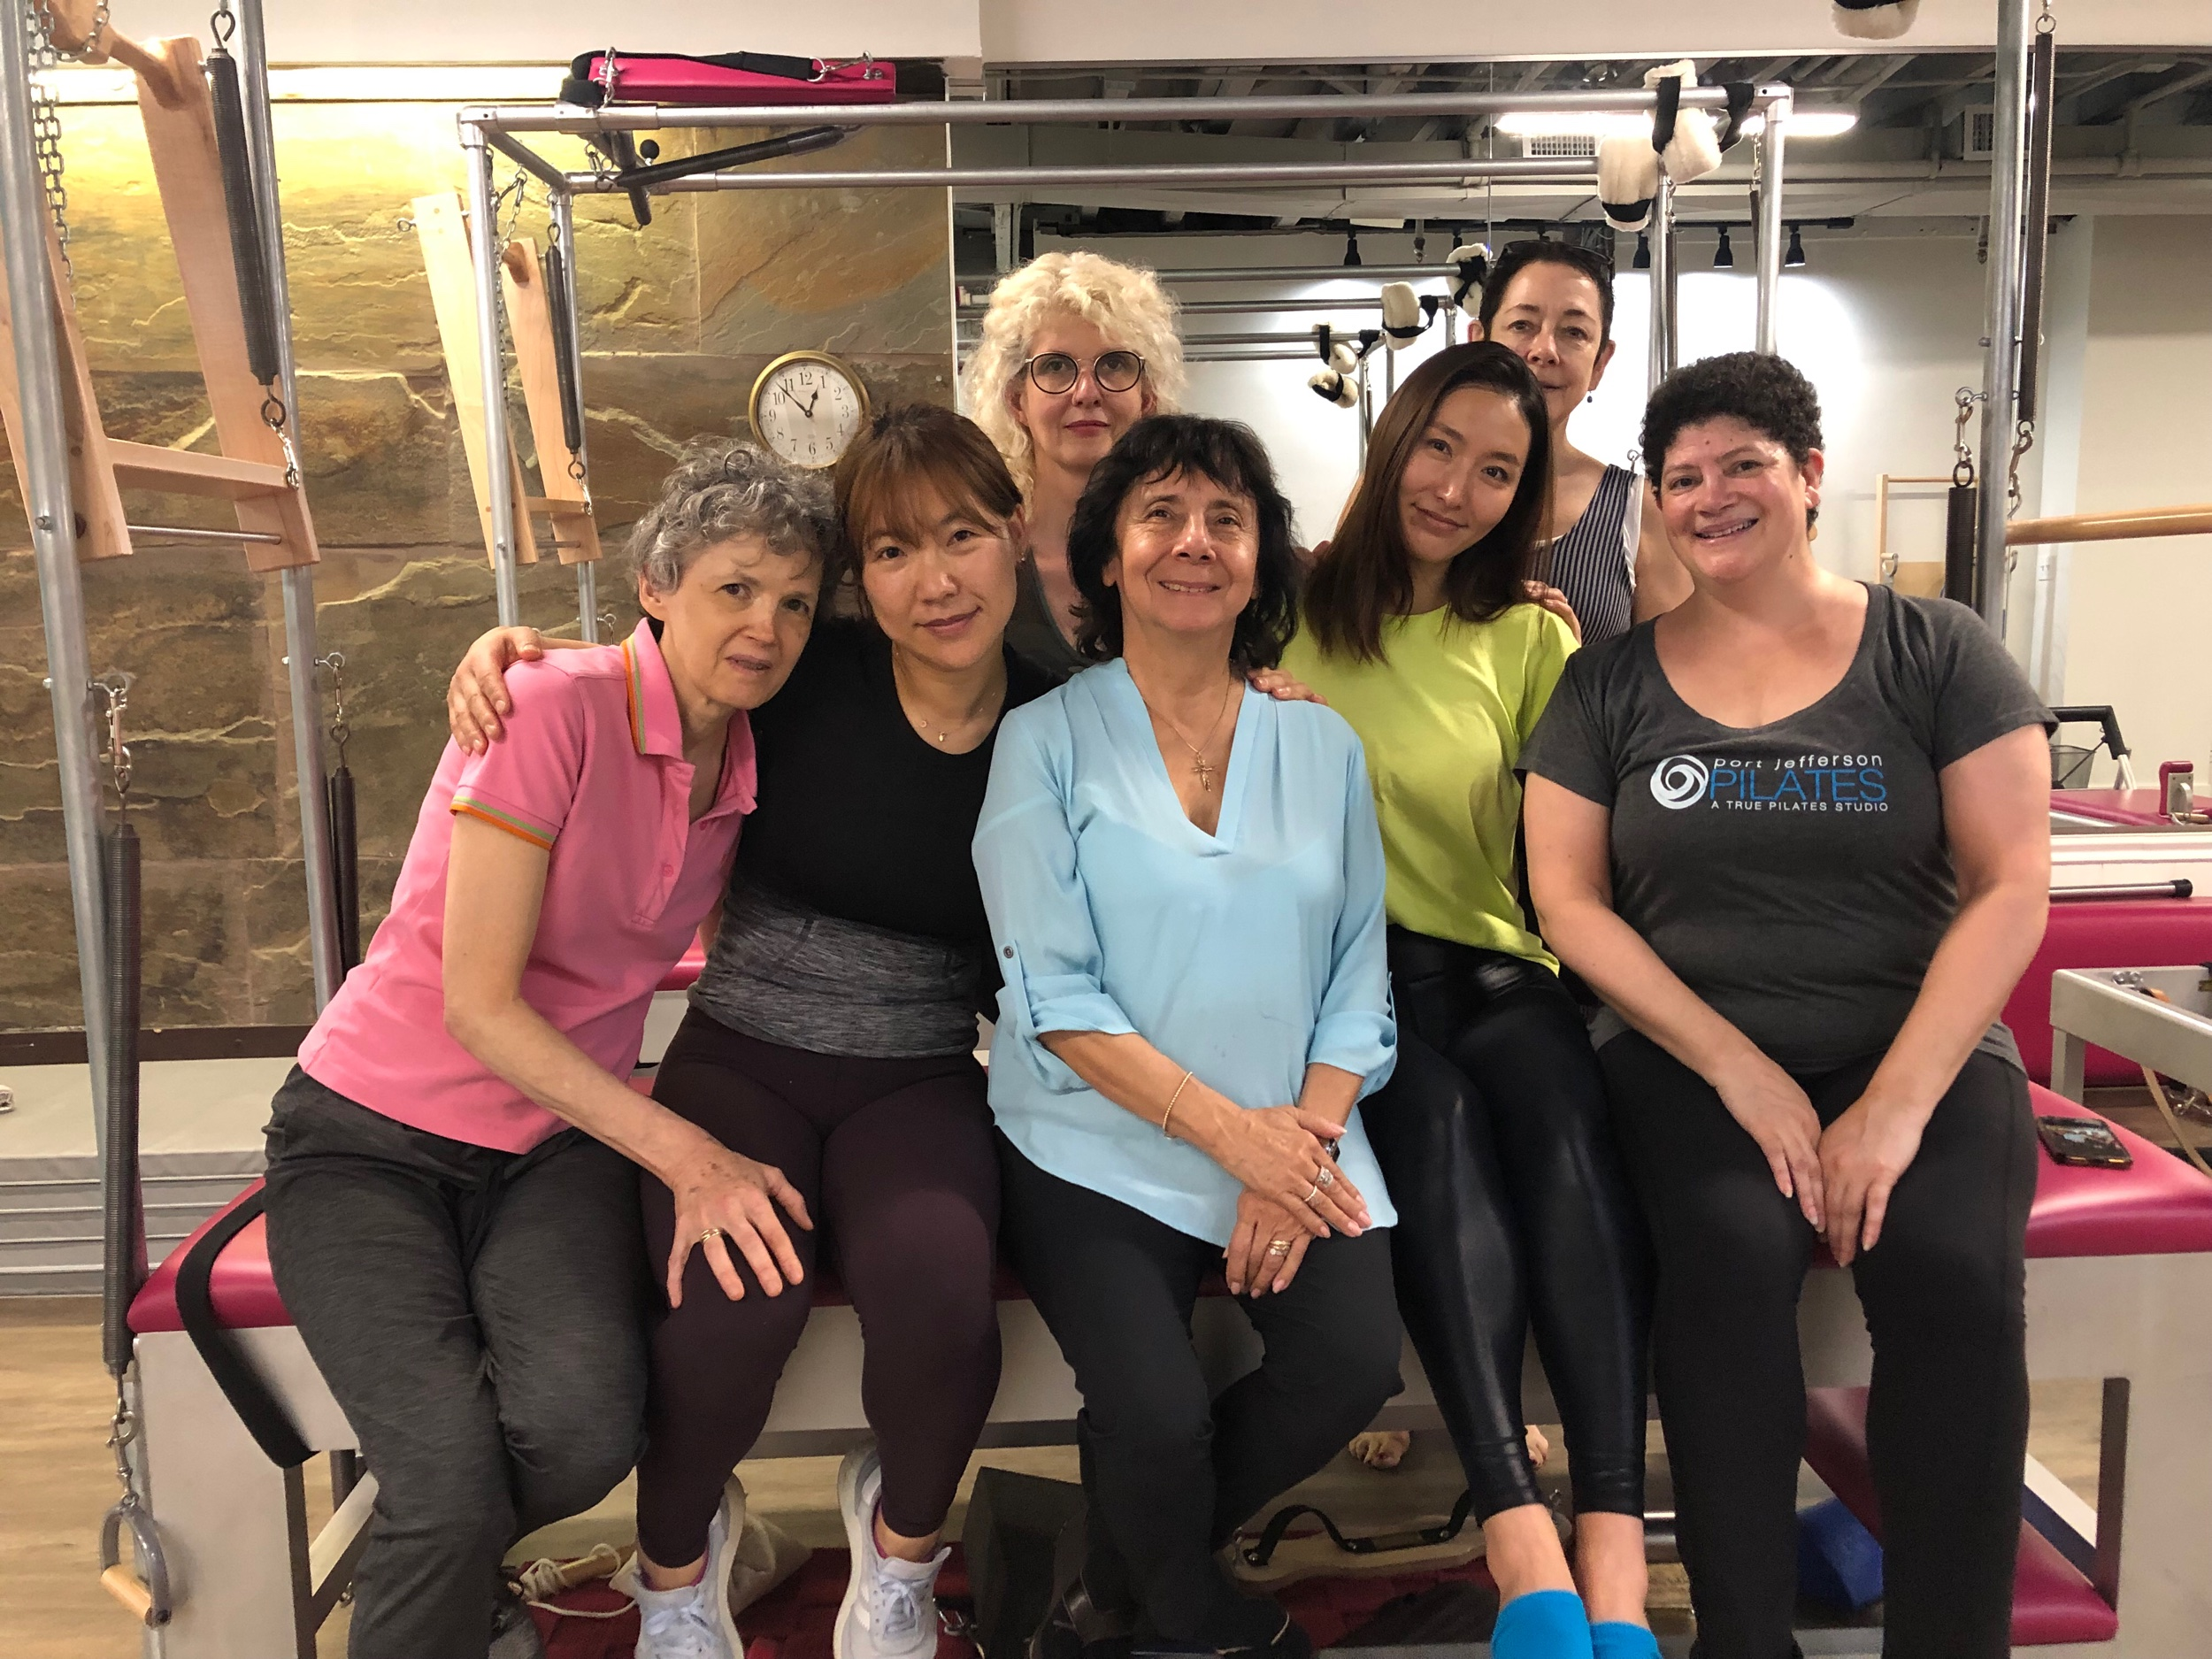 Advanced Seminar Lifespan Pilates NYC - June 2019